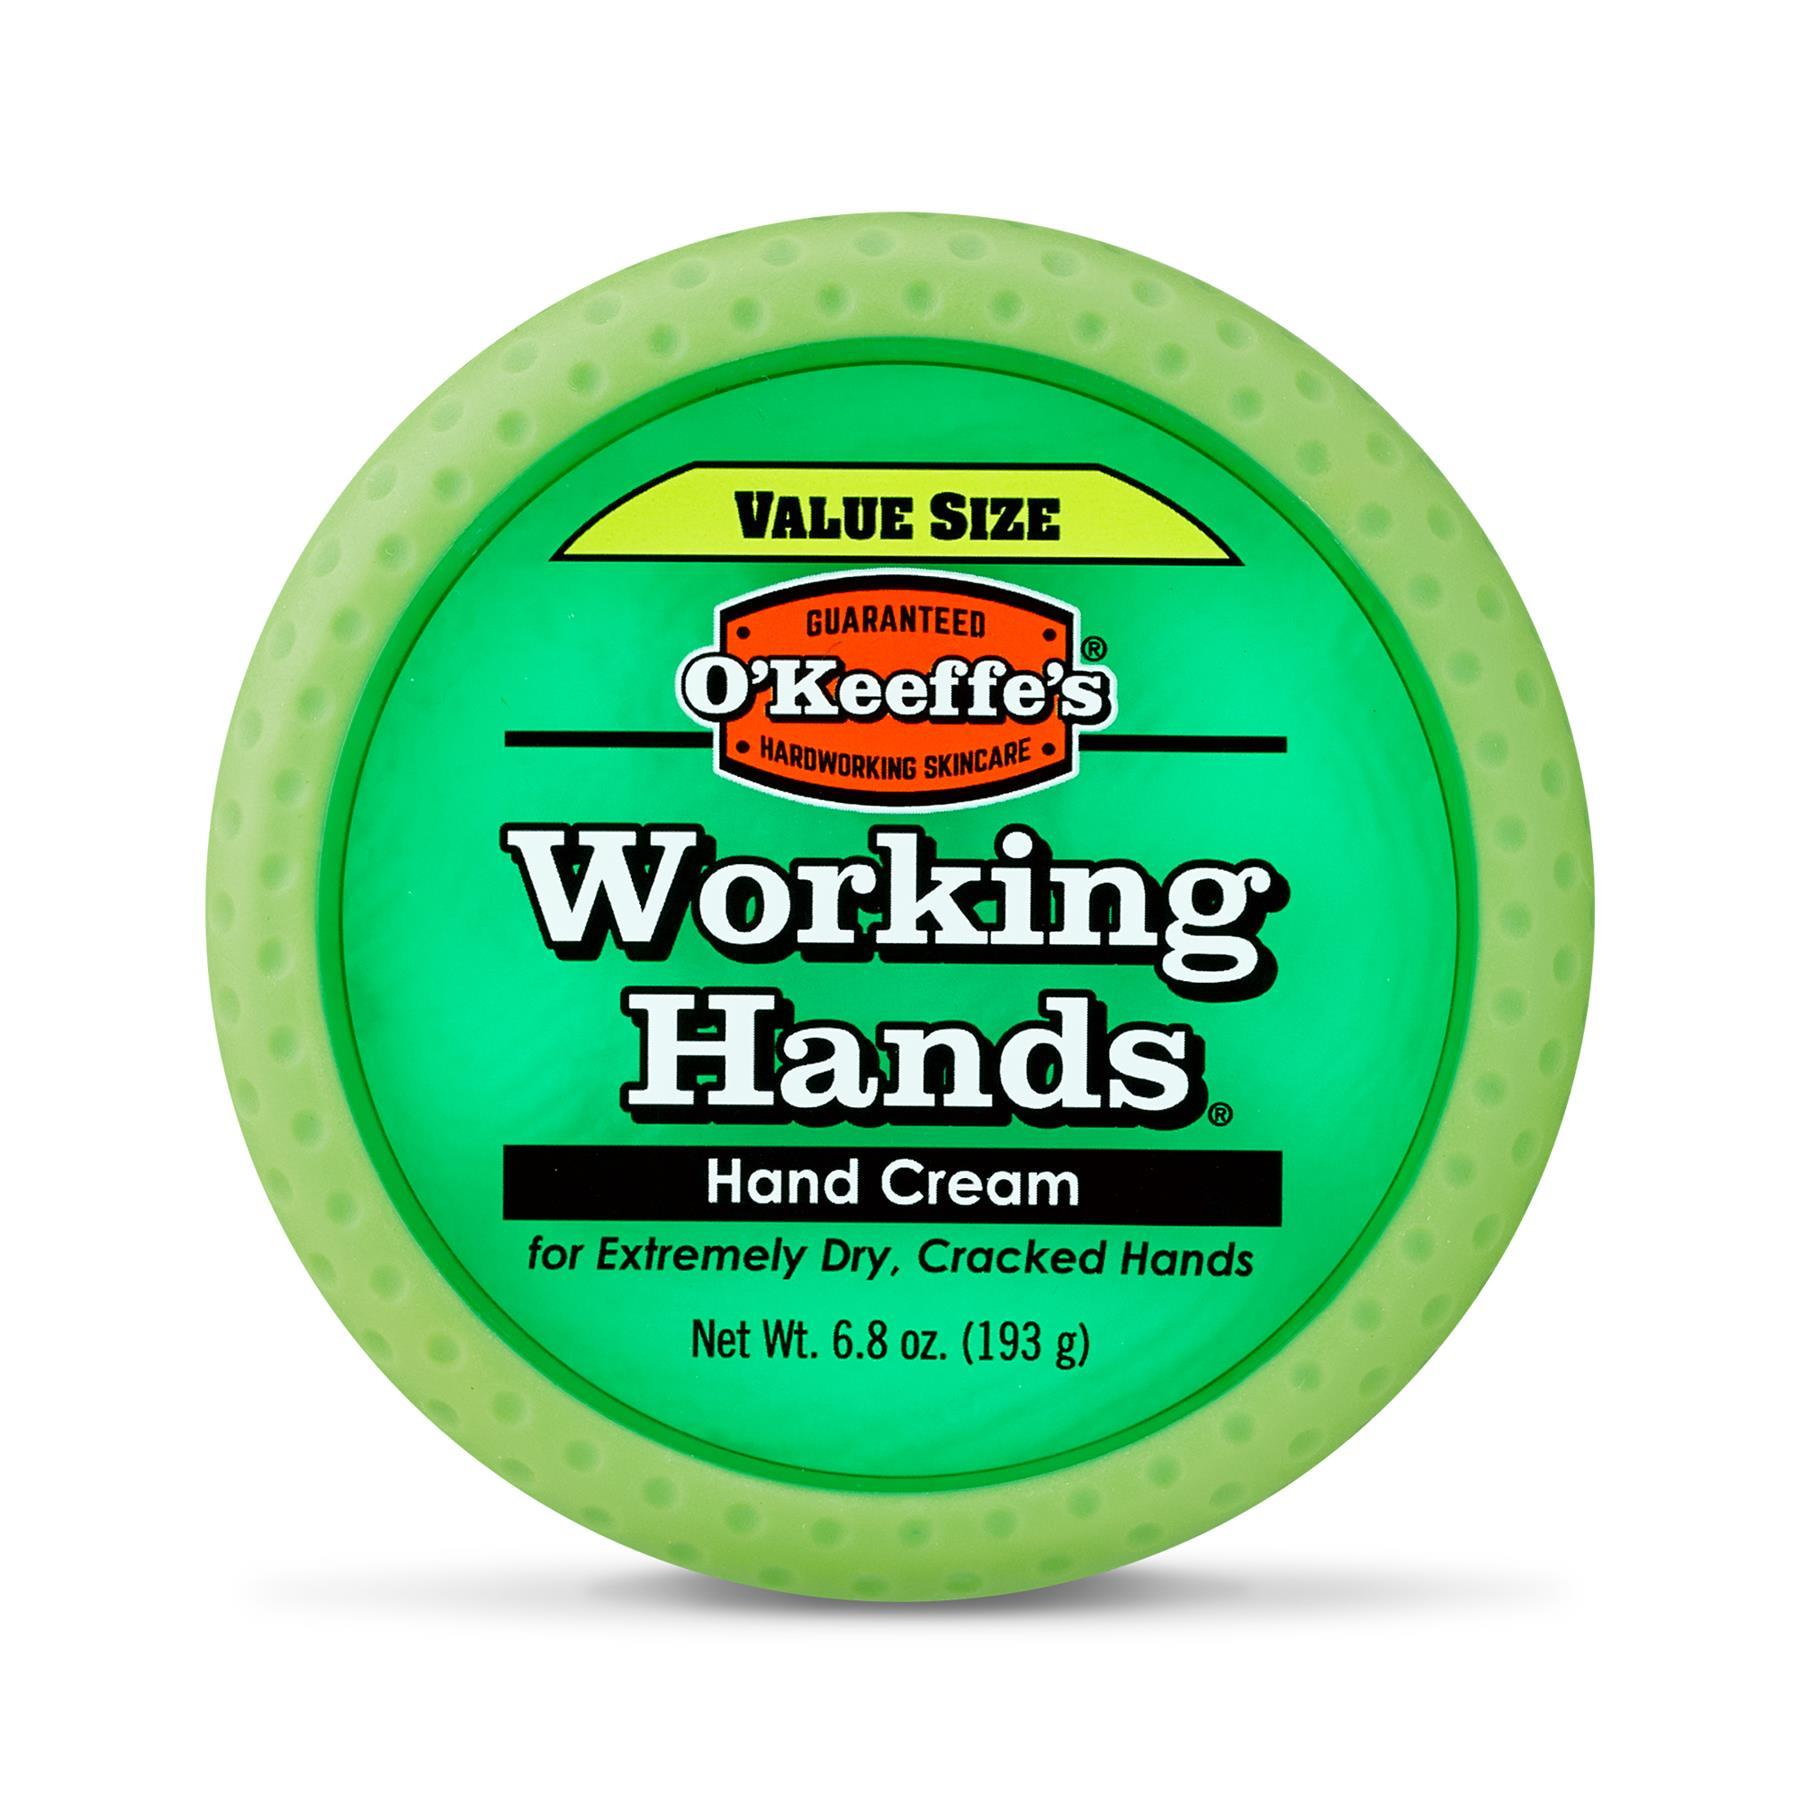 O'Keeffe's Working Hands Value Size Jar 193g